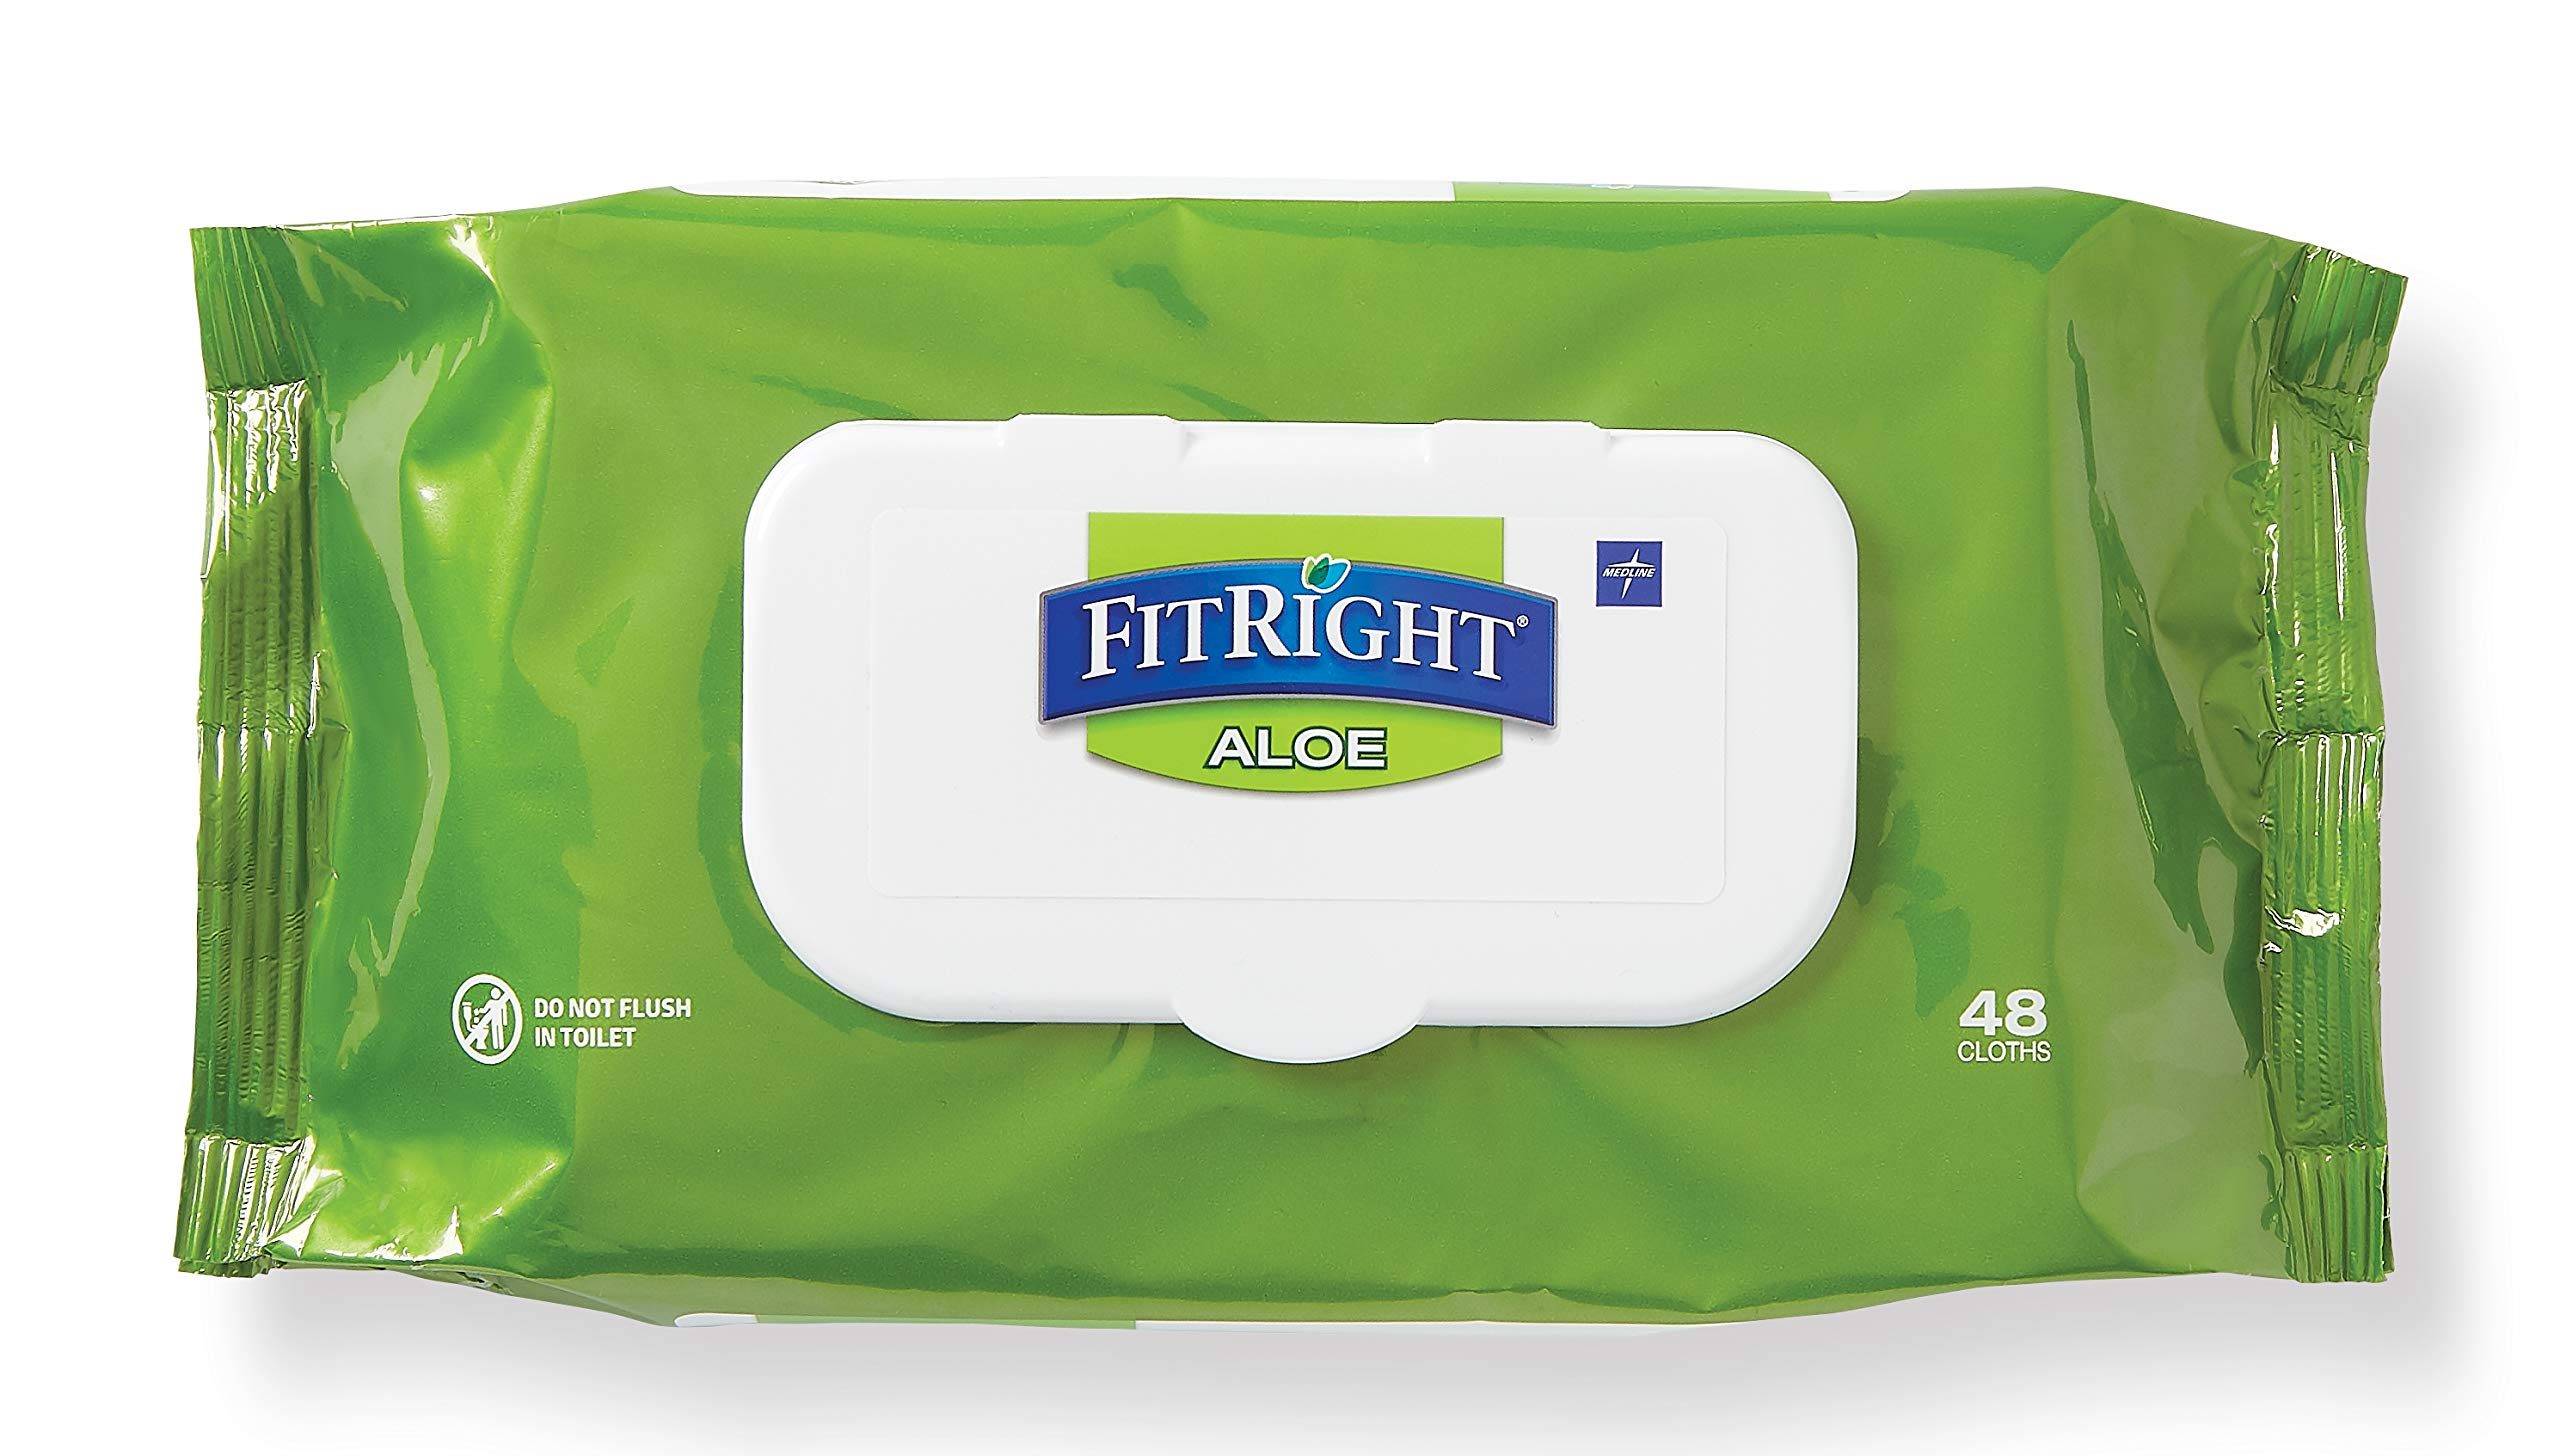 FitRight Aloe Personal Cleansing Cloth Wipes, Scented, 576 Count, 8 x 12 inch Adult Large Incontinence Wipes by Medline